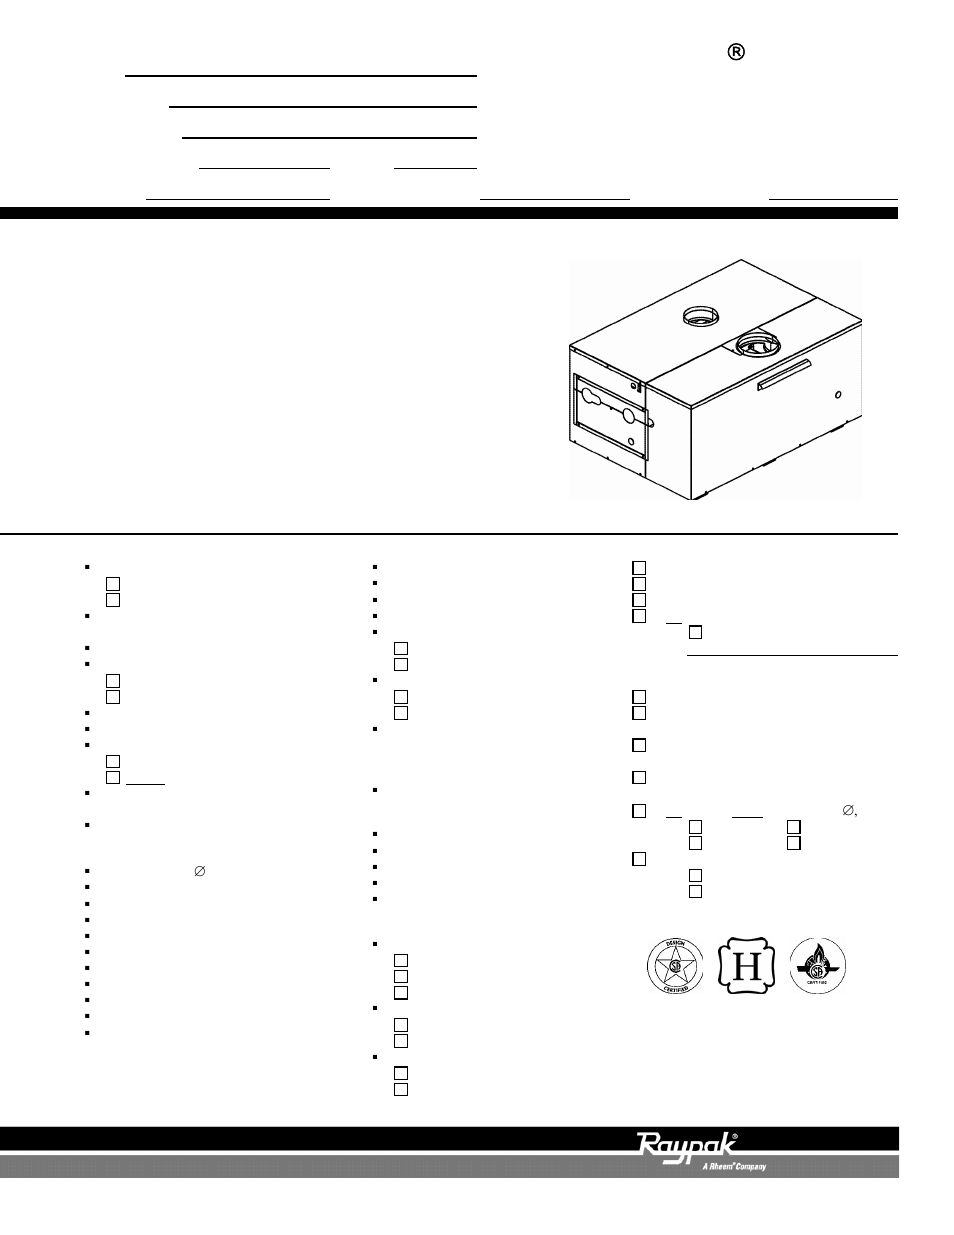 Raypak 122-322 User Manual | 2 pages